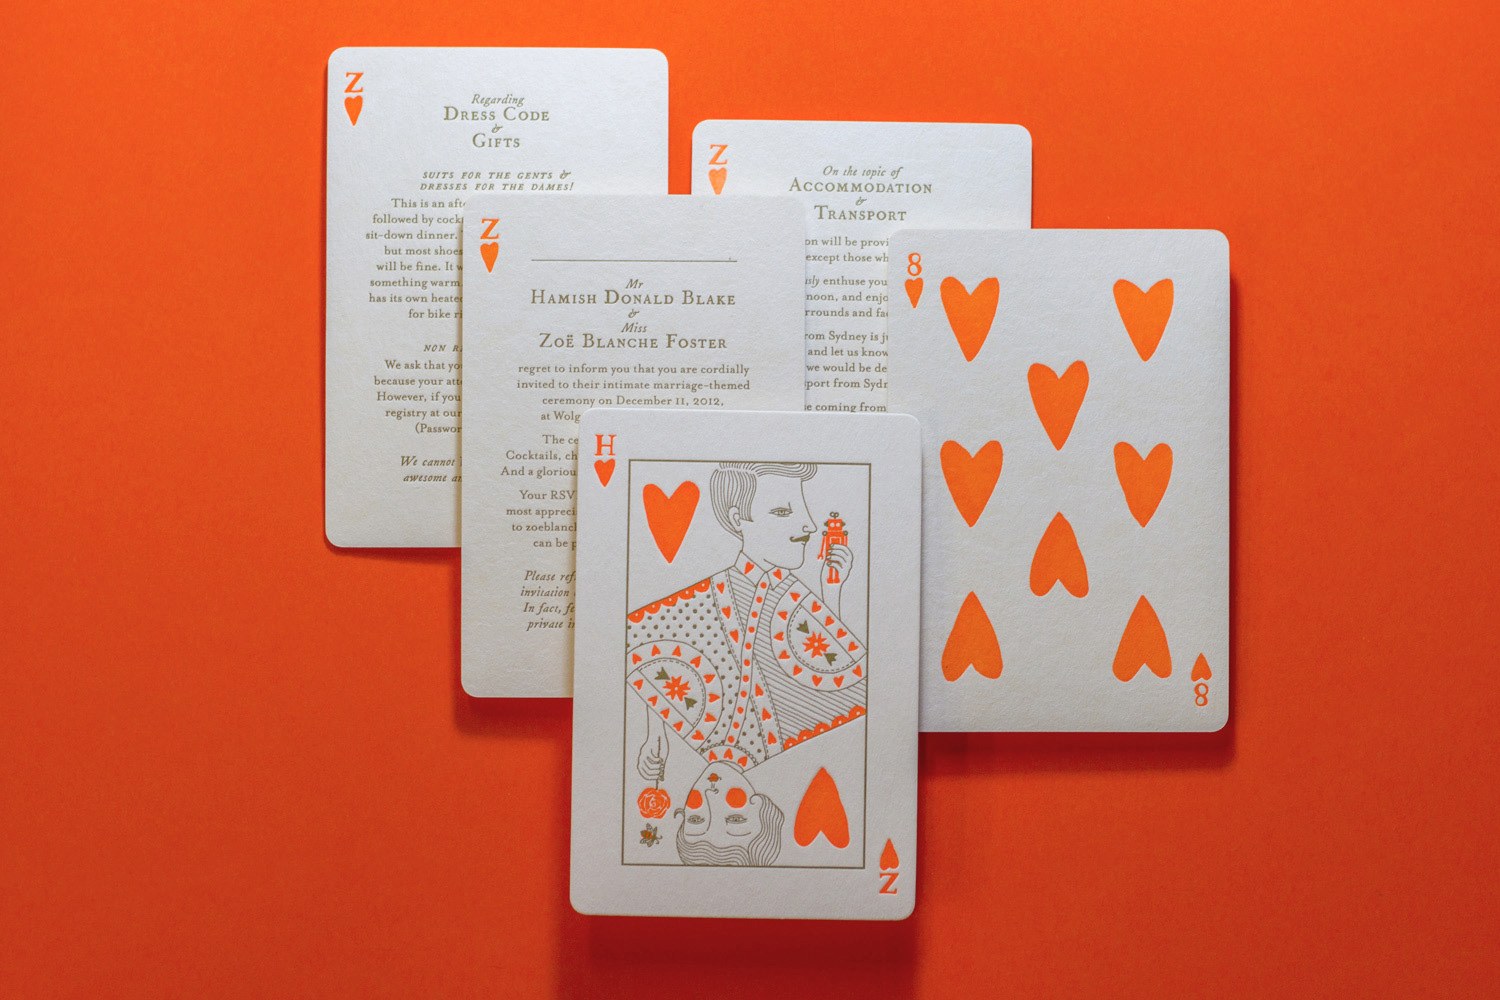 Cheeky letterpress wedding invitations for Hamish Blake and Zoe Foster-Blake illustrated by Allison Colpoys